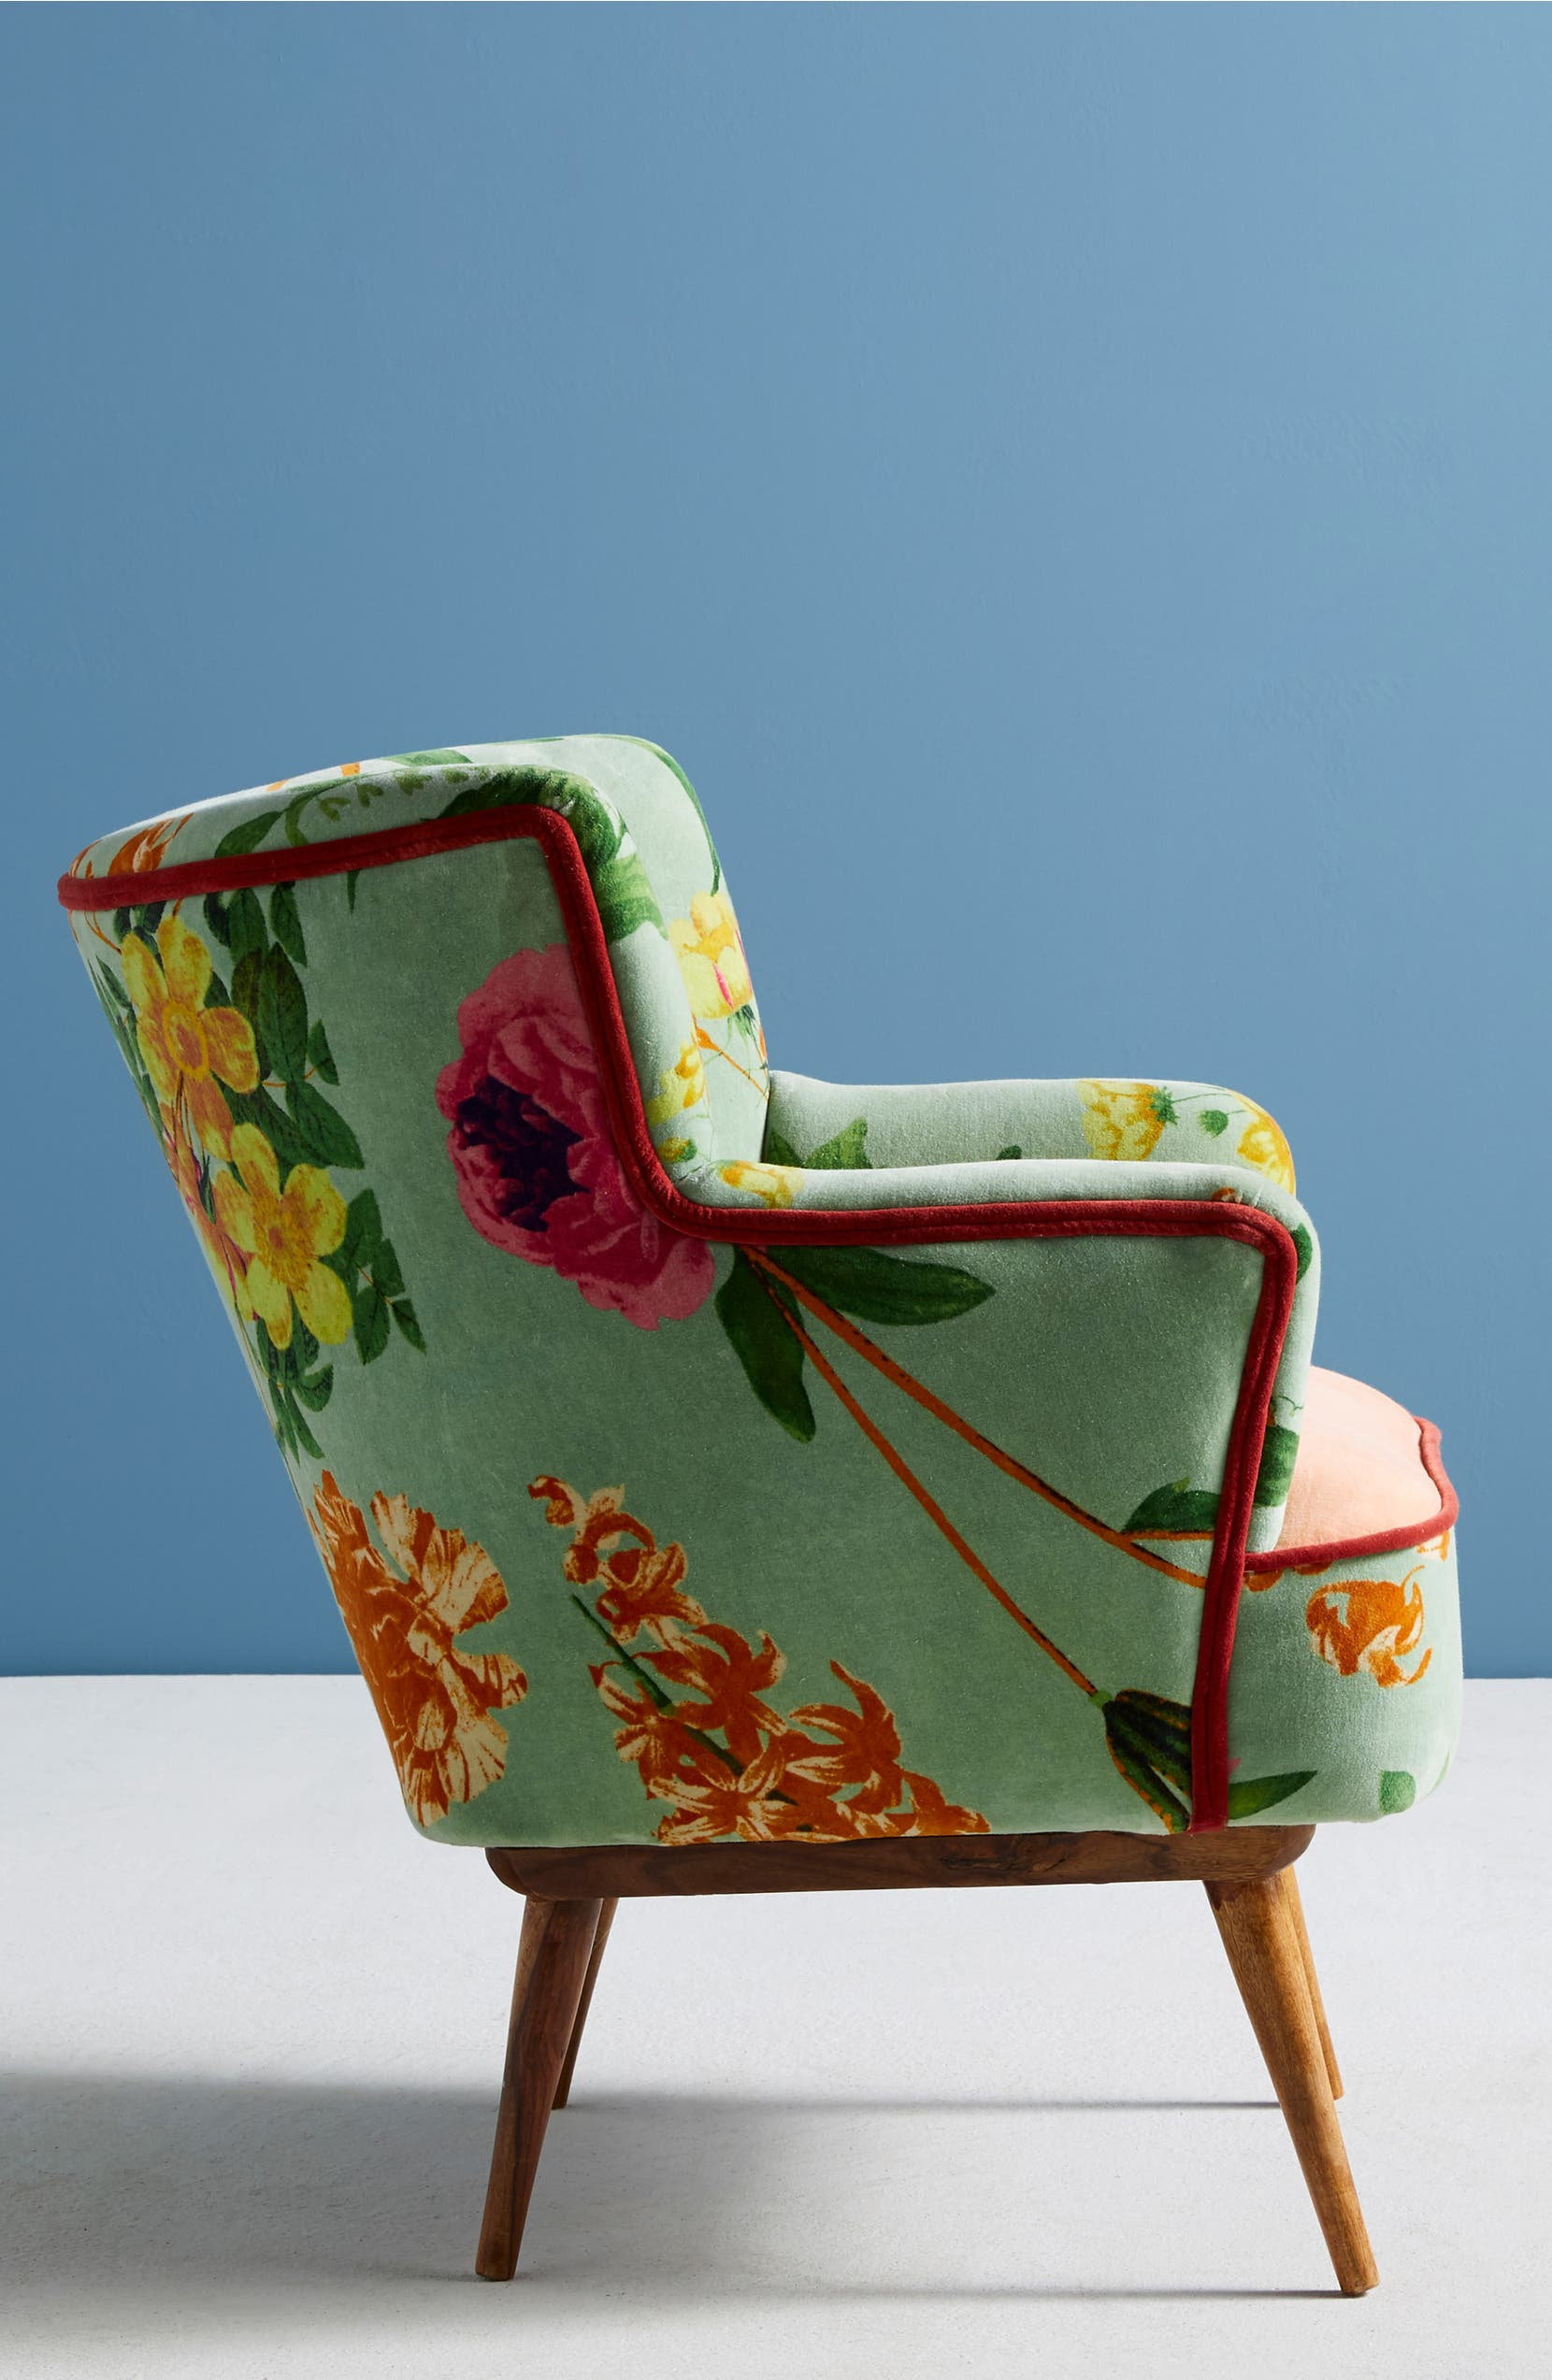 Admirable Anthropologie Floret Accent Chair Nordstrom Gamerscity Chair Design For Home Gamerscityorg